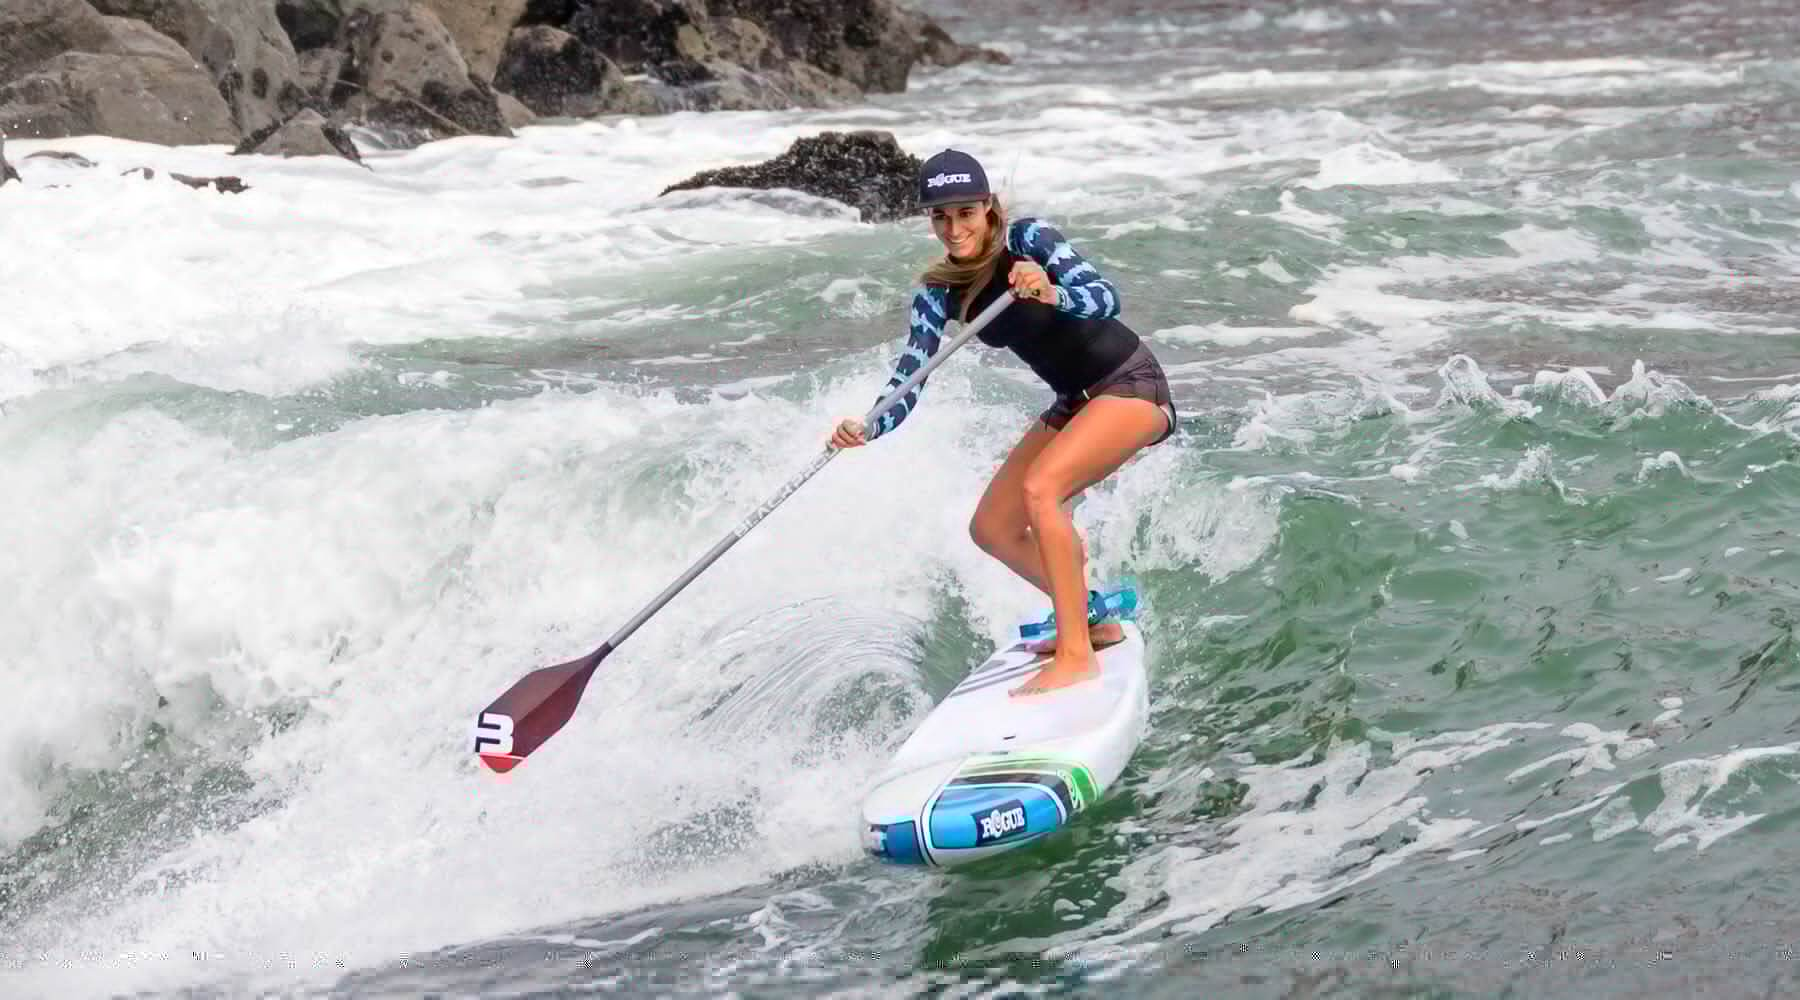 Olivia Piana using the Black Project Hydro paddle and texcarbon shaft